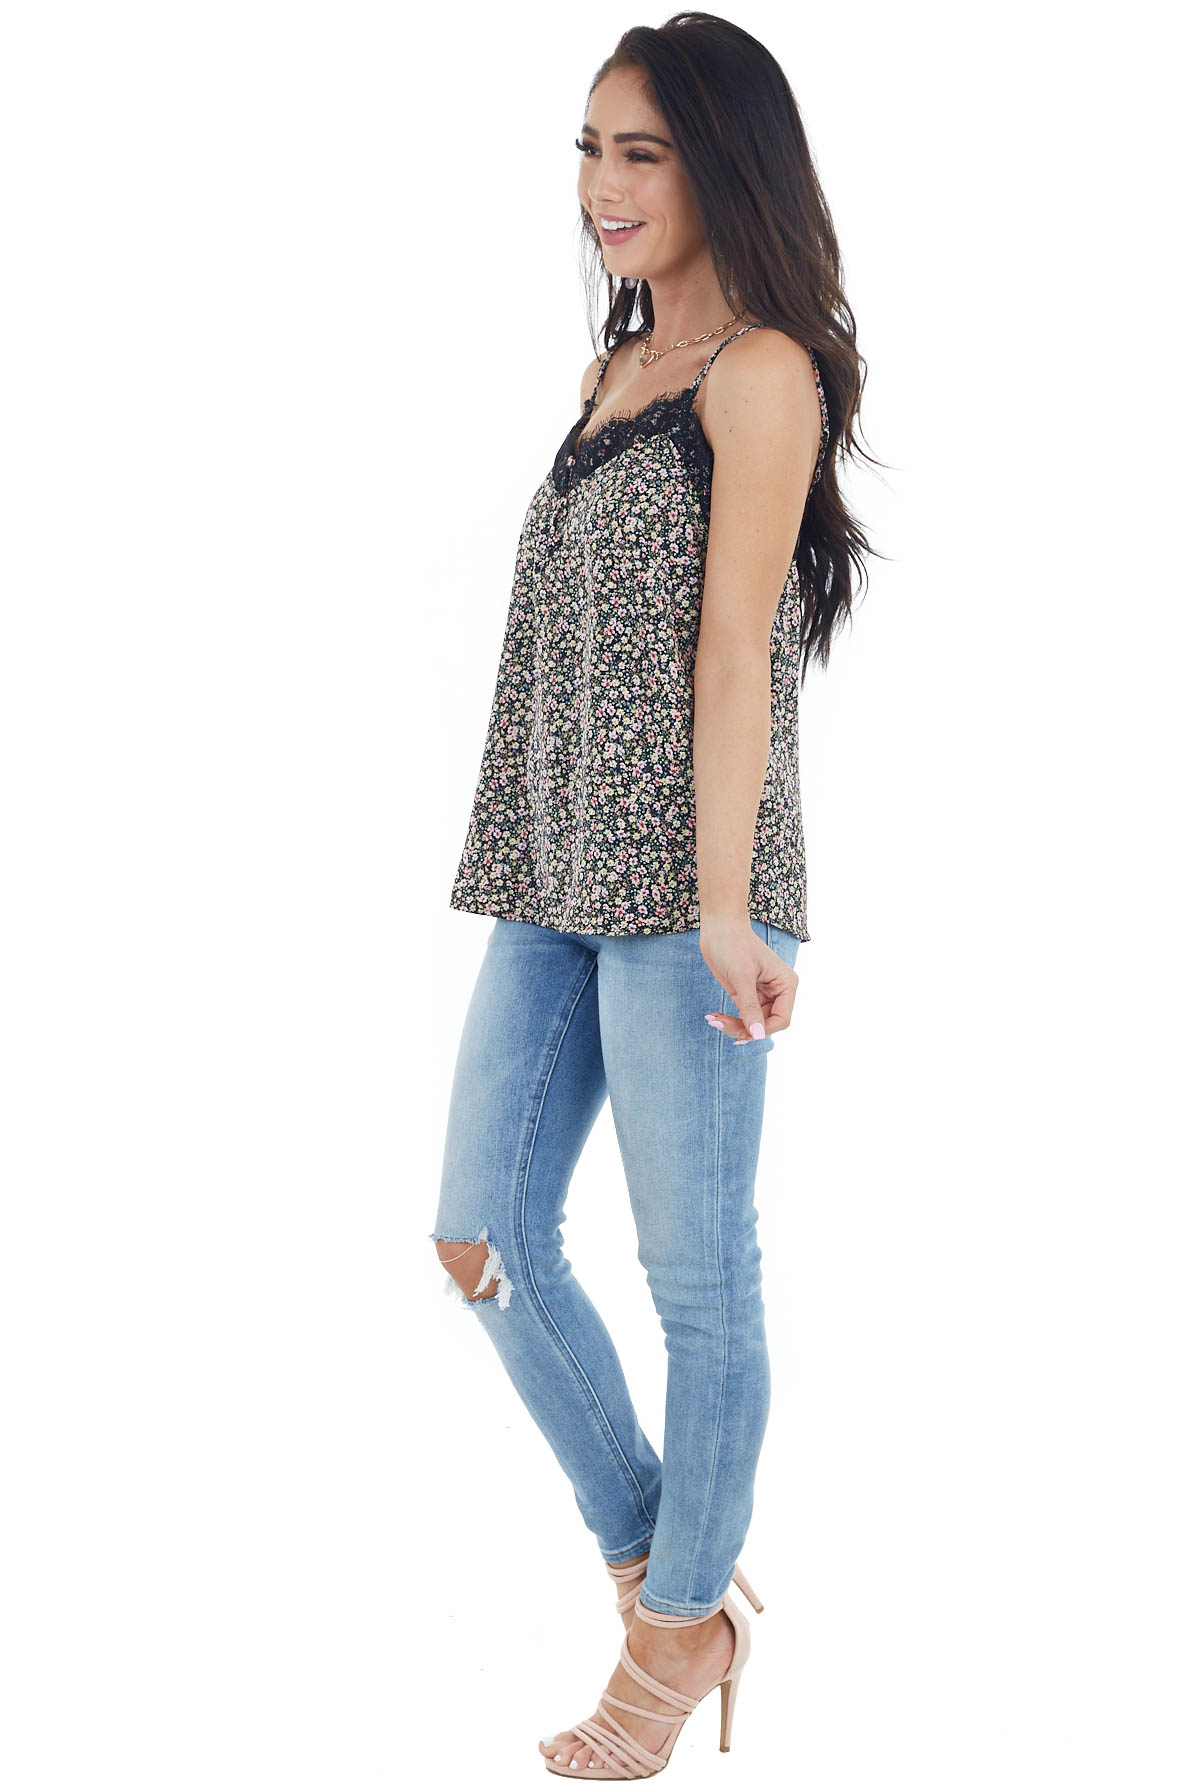 Black Floral Print Sleeveless Top with Lace Details